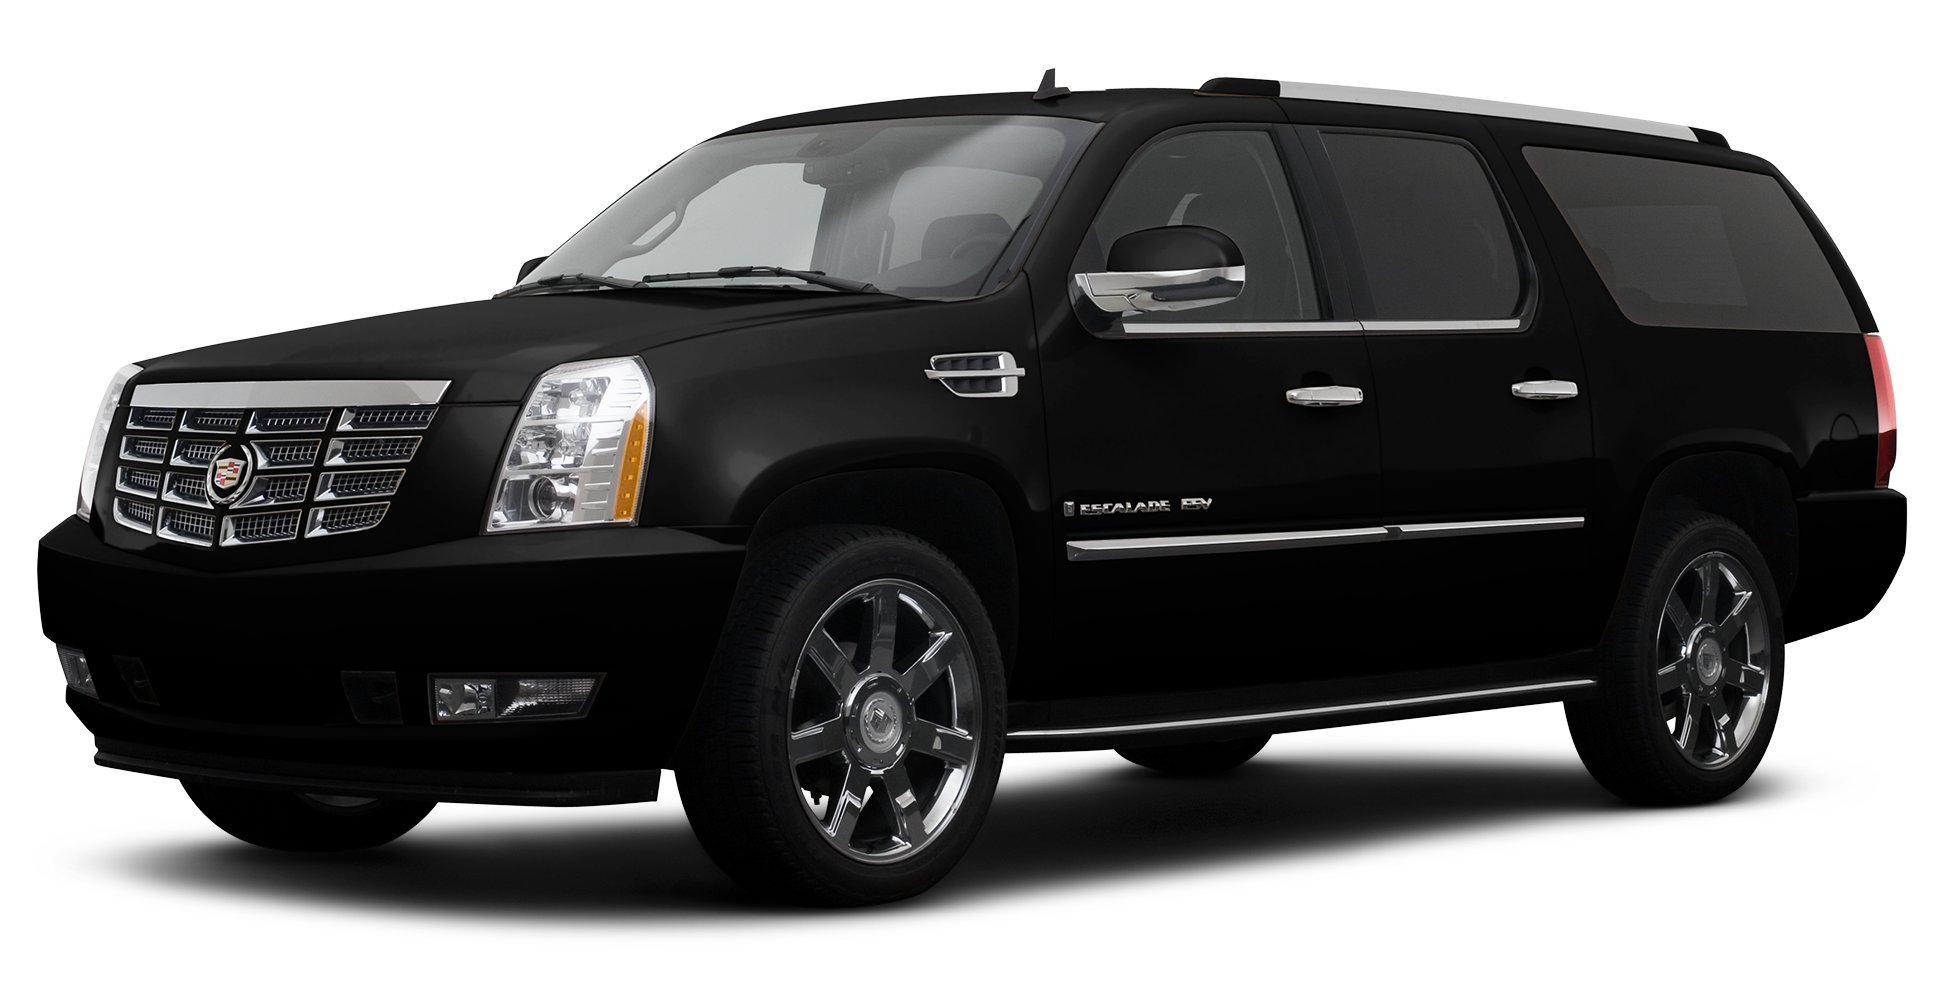 2008 cadillac escalade esv reviews images. Black Bedroom Furniture Sets. Home Design Ideas